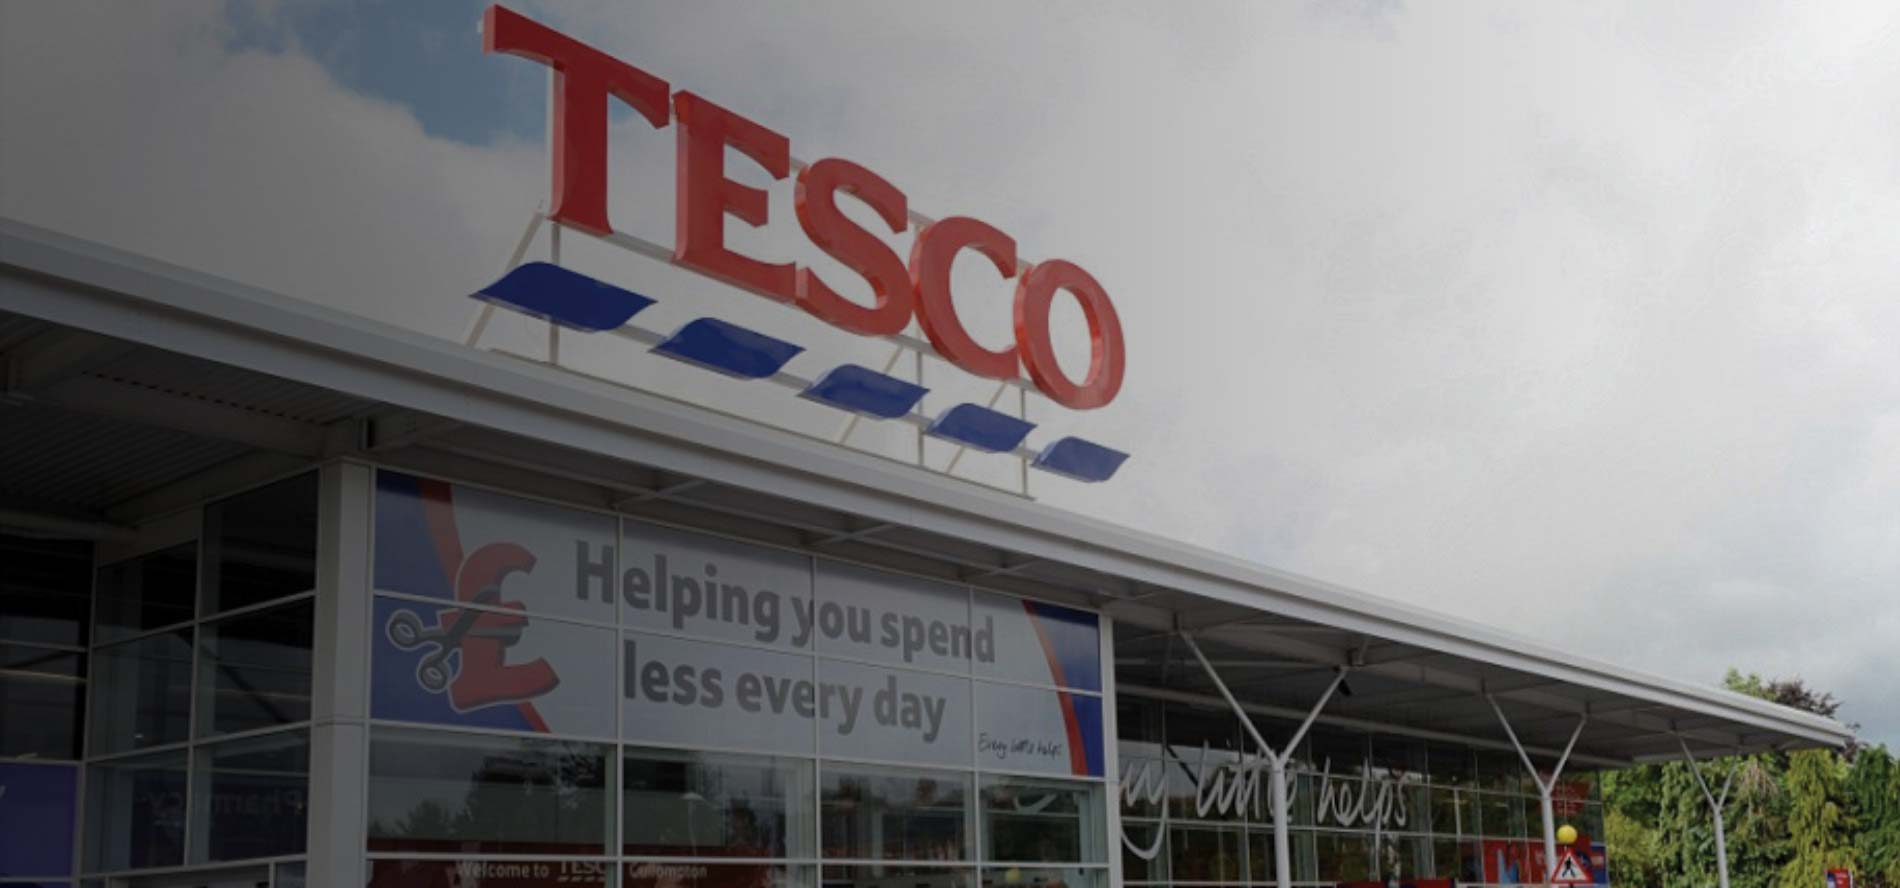 Tesco Store Inventory Management Solution